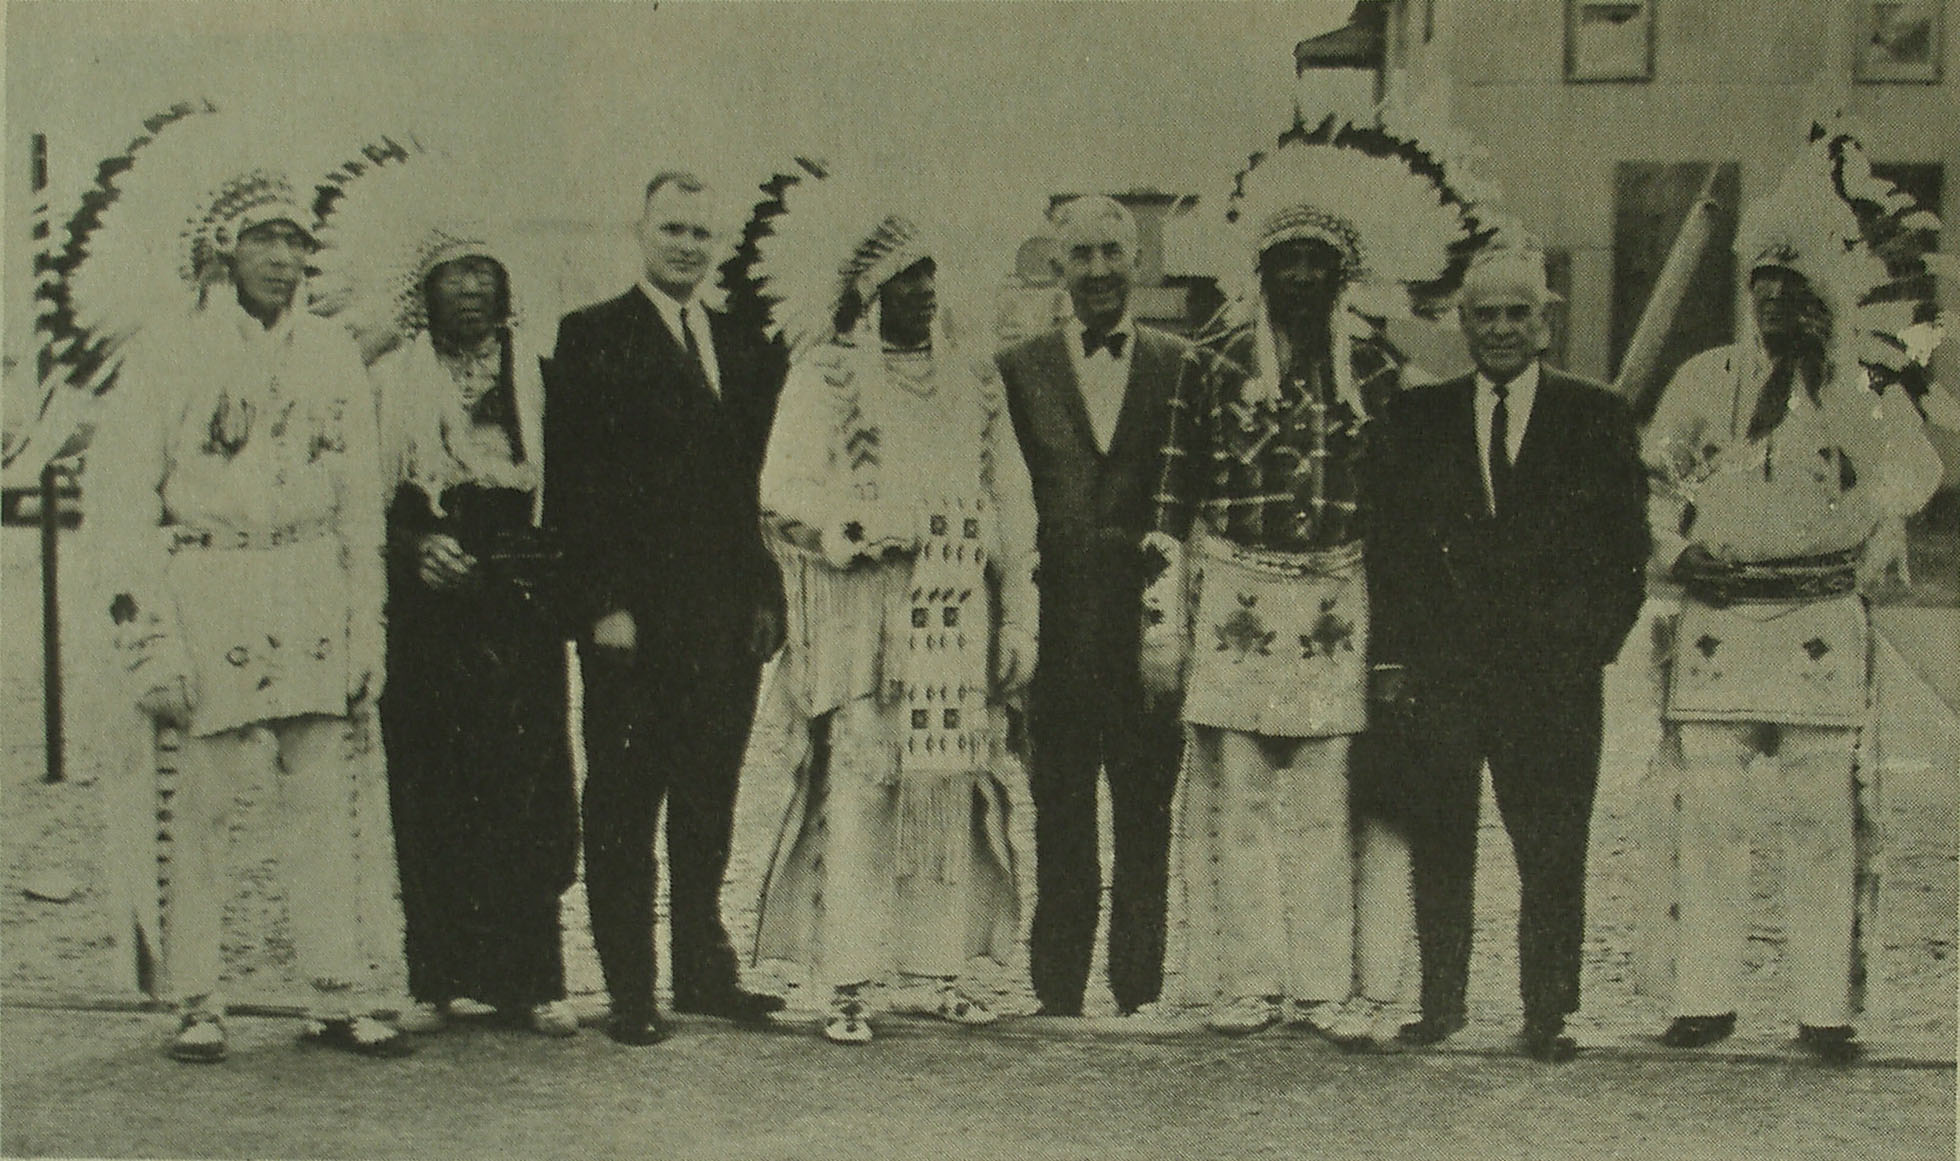 photograph of Justice Clark with members of the Blackfeet tribe in Montana, 1963